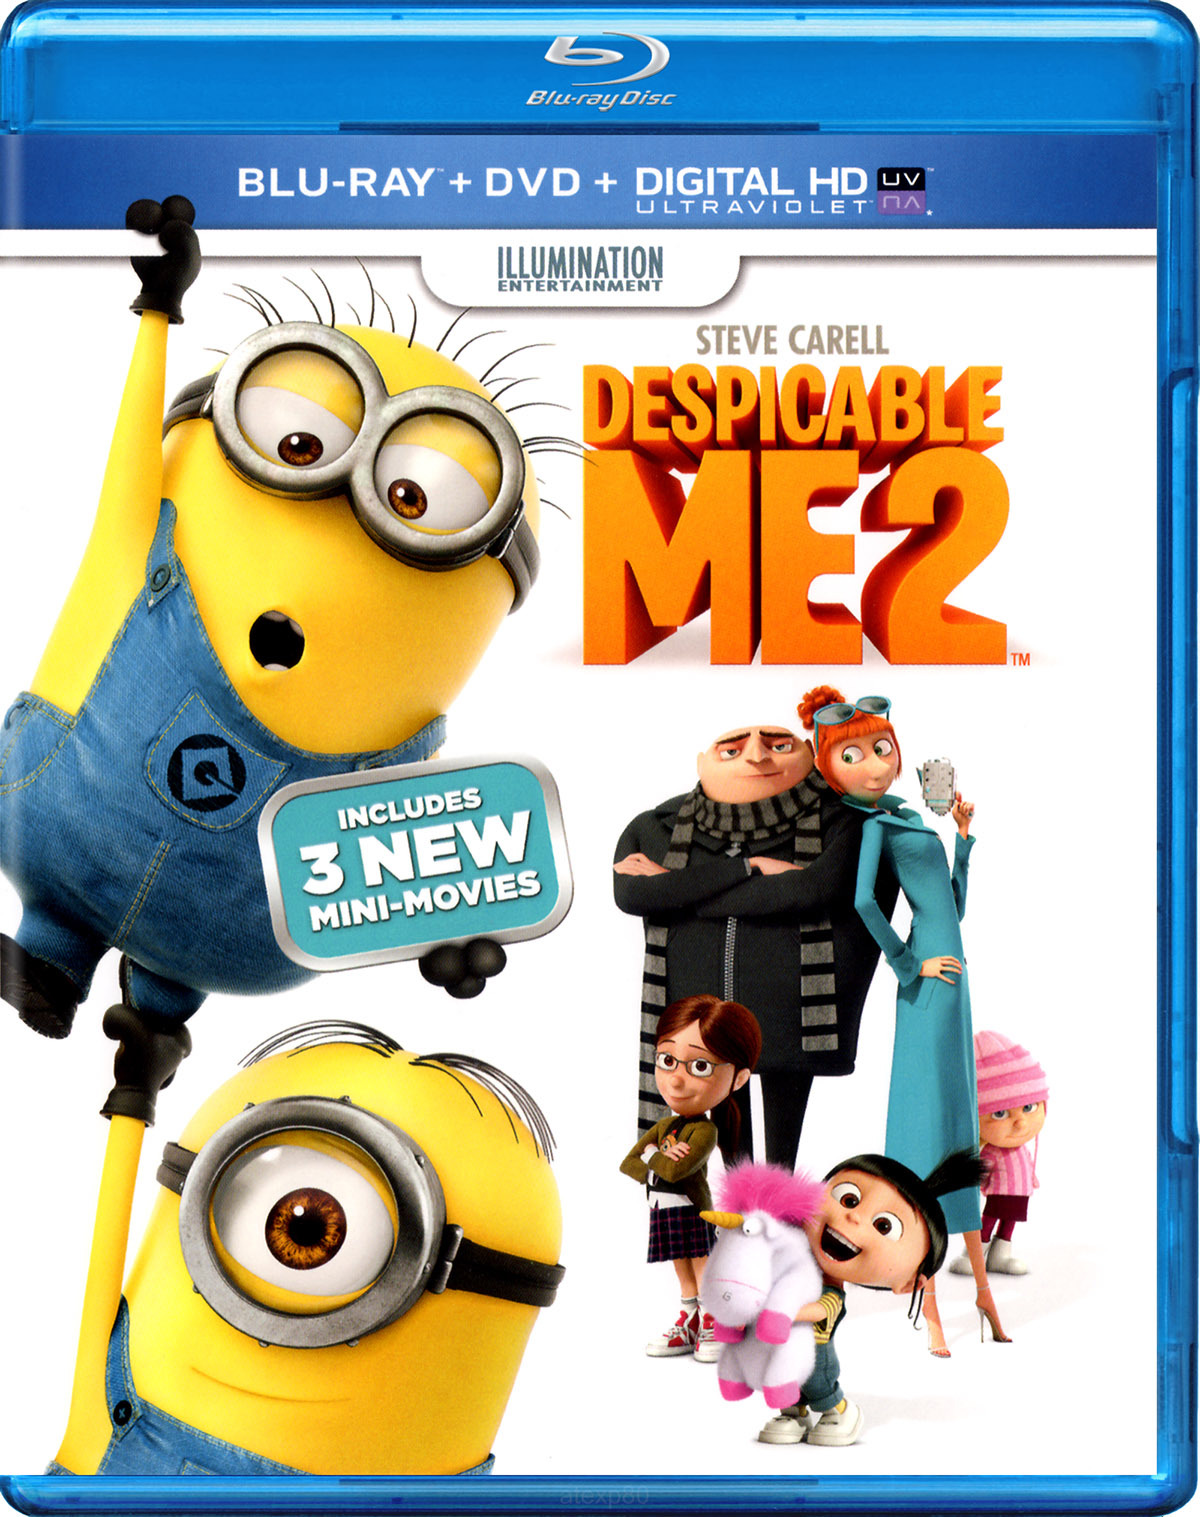 Despicable Me 2 (Blu-ray/DVD) | Twilight Sparkle's Media Library